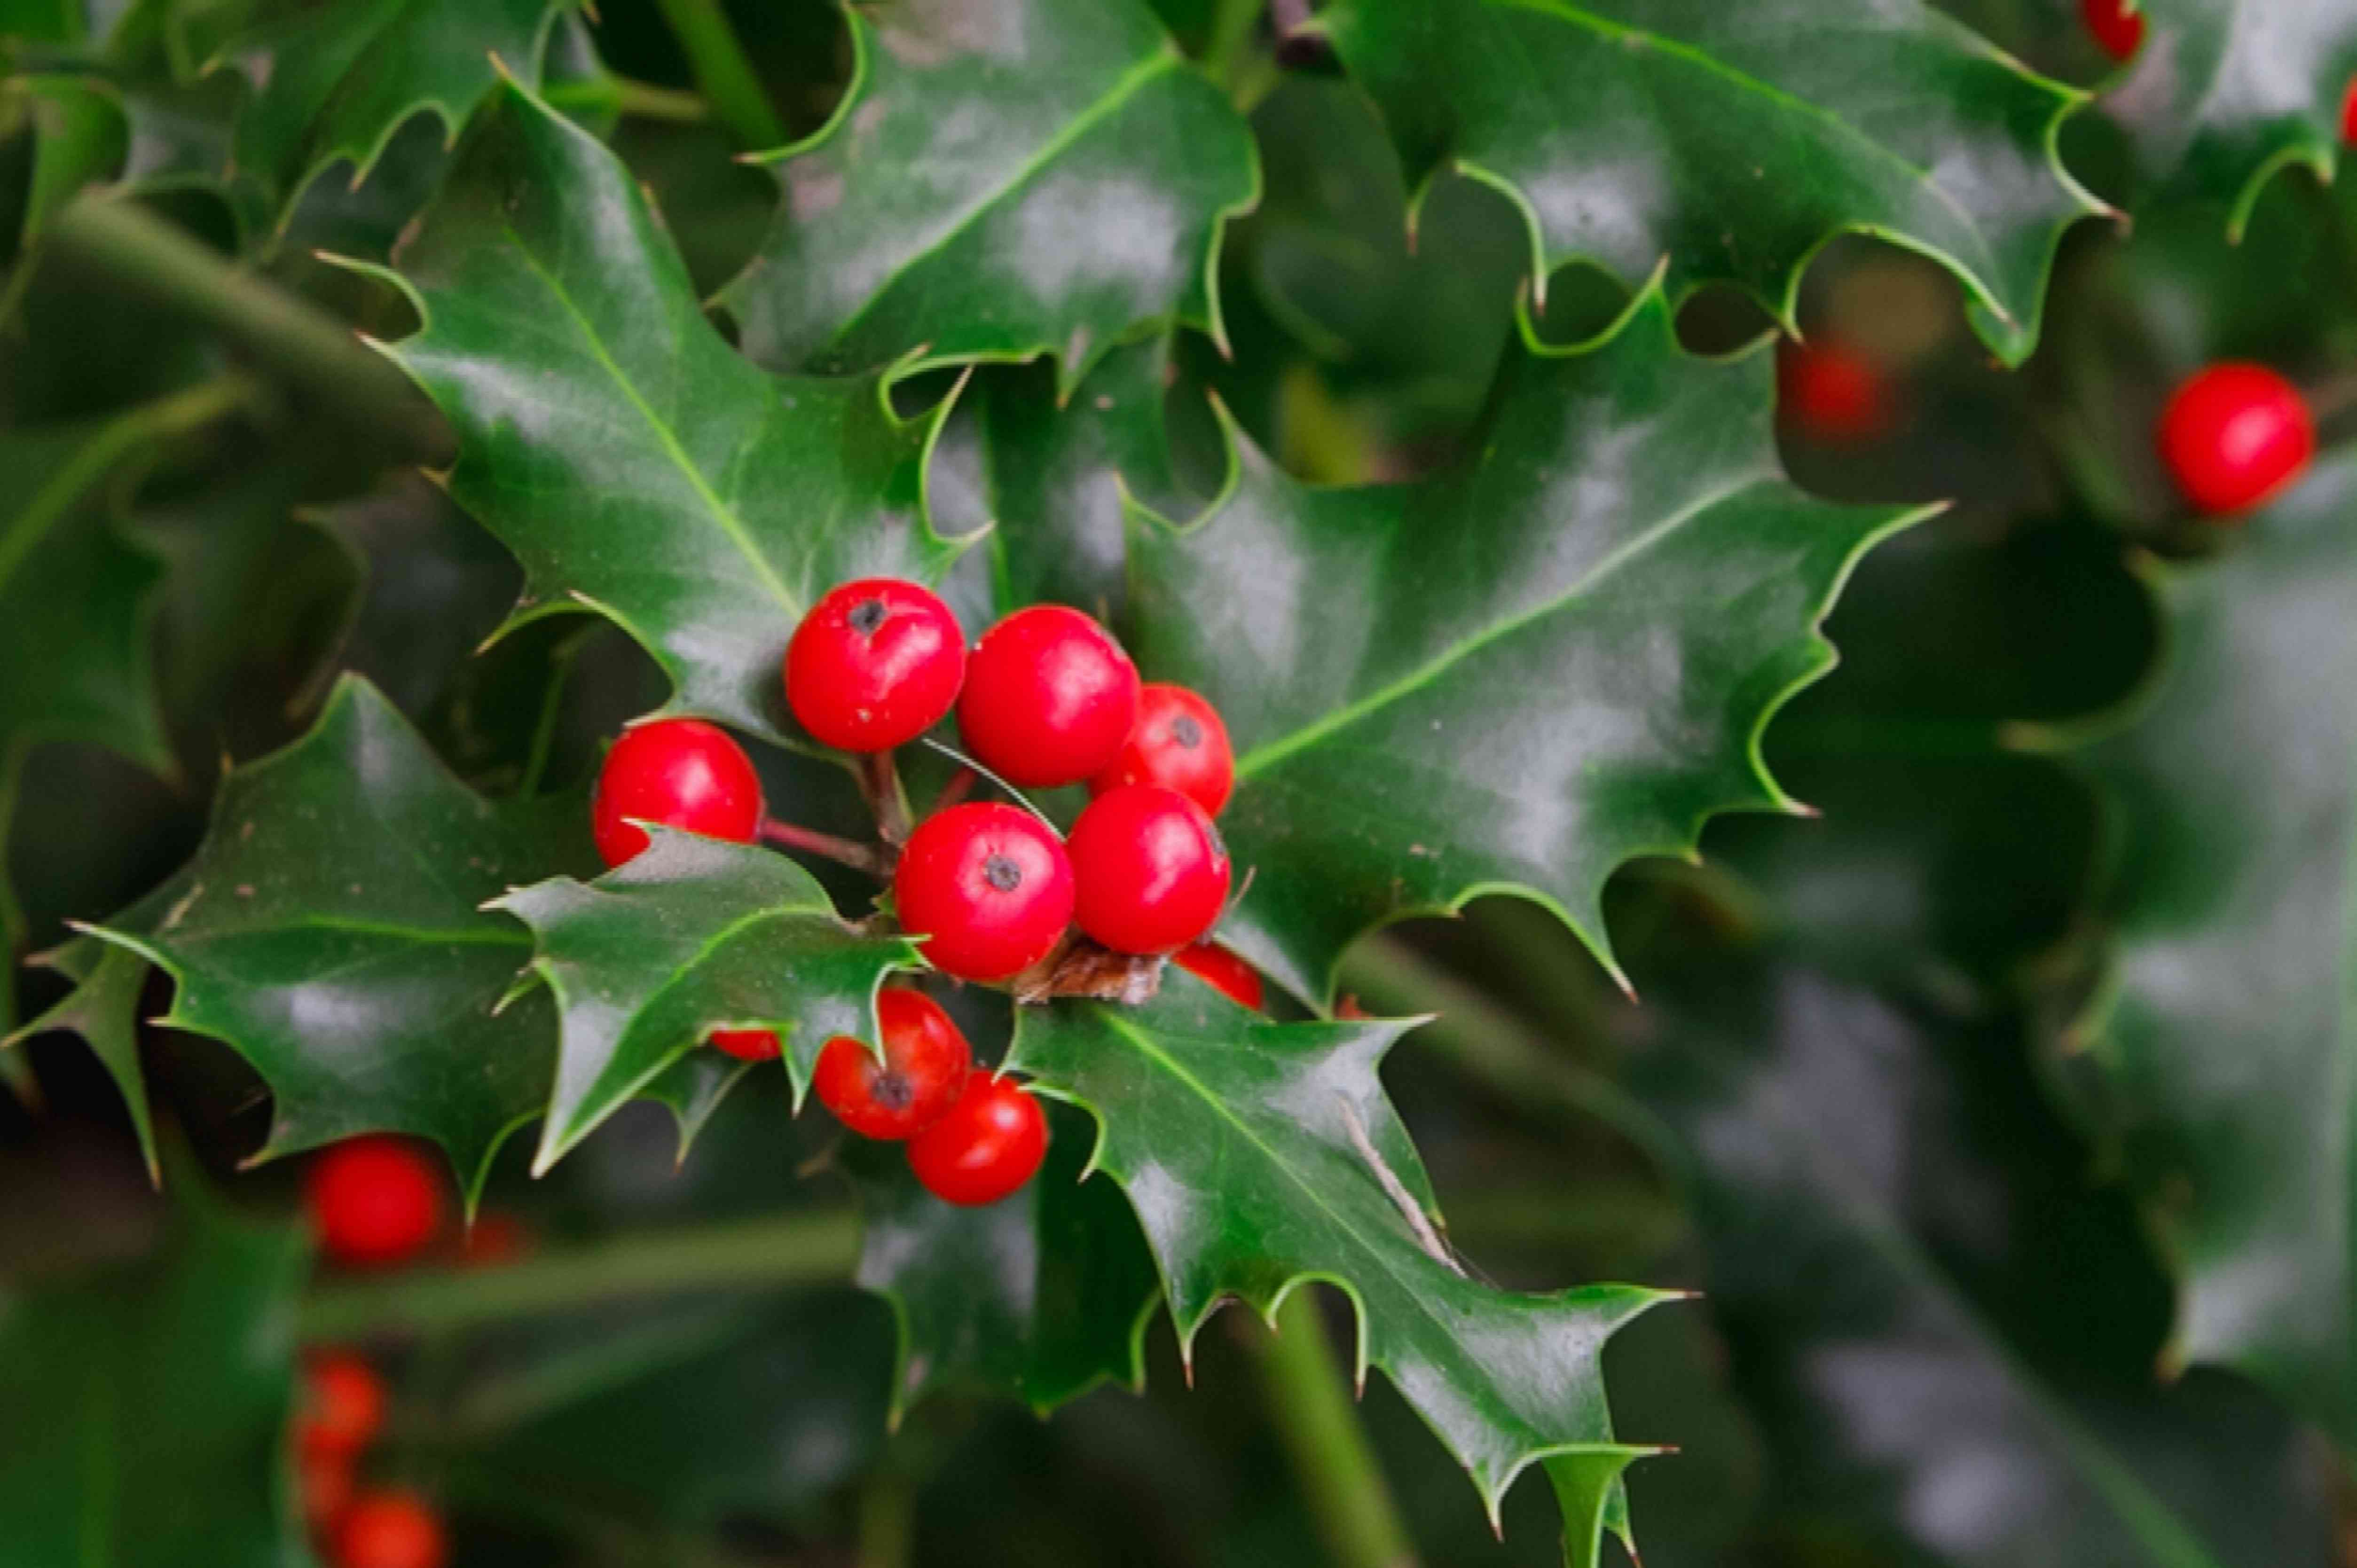 Holly plant with poisonous bright red berries and leaves closeup